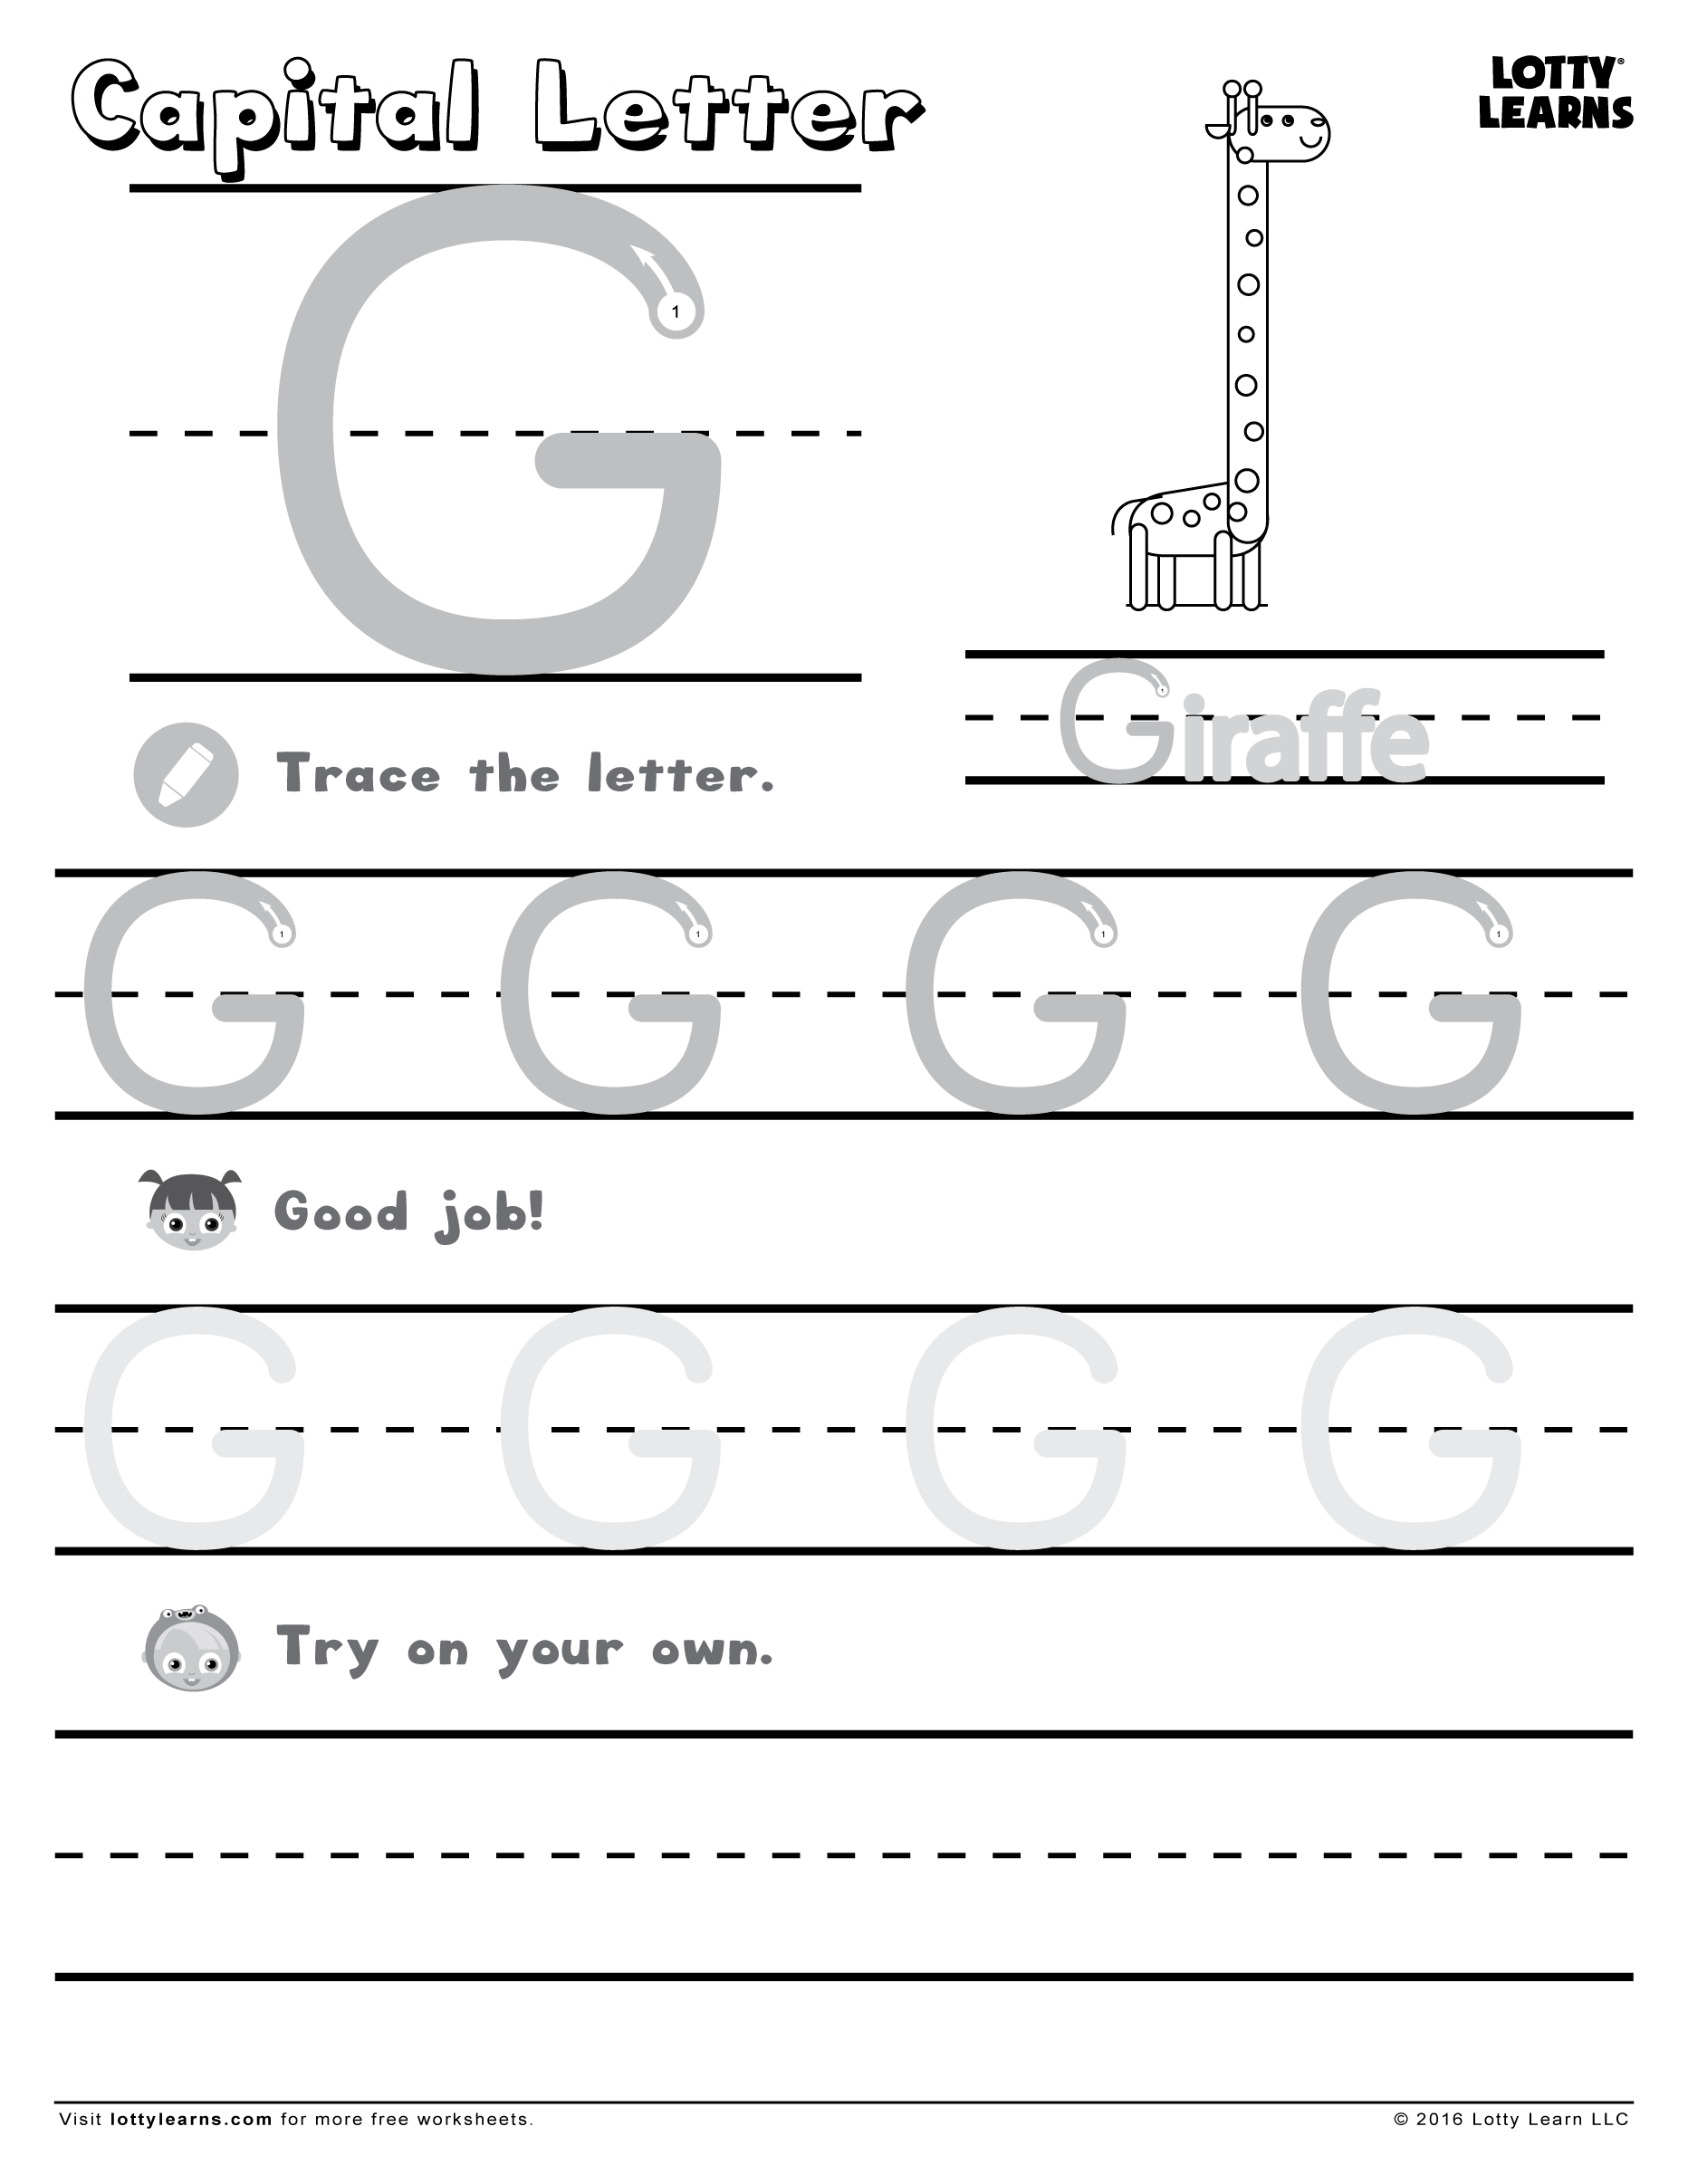 capital letters worksheet capital letter g lotty learns abc printables 52815